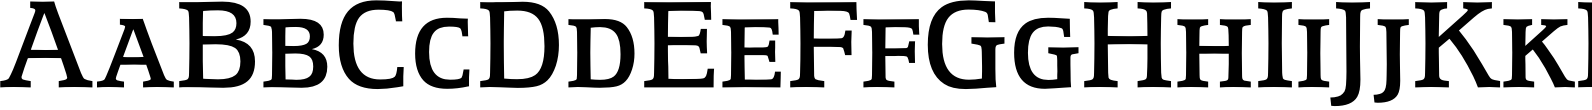 EquestrienneRR ExpertBook Font